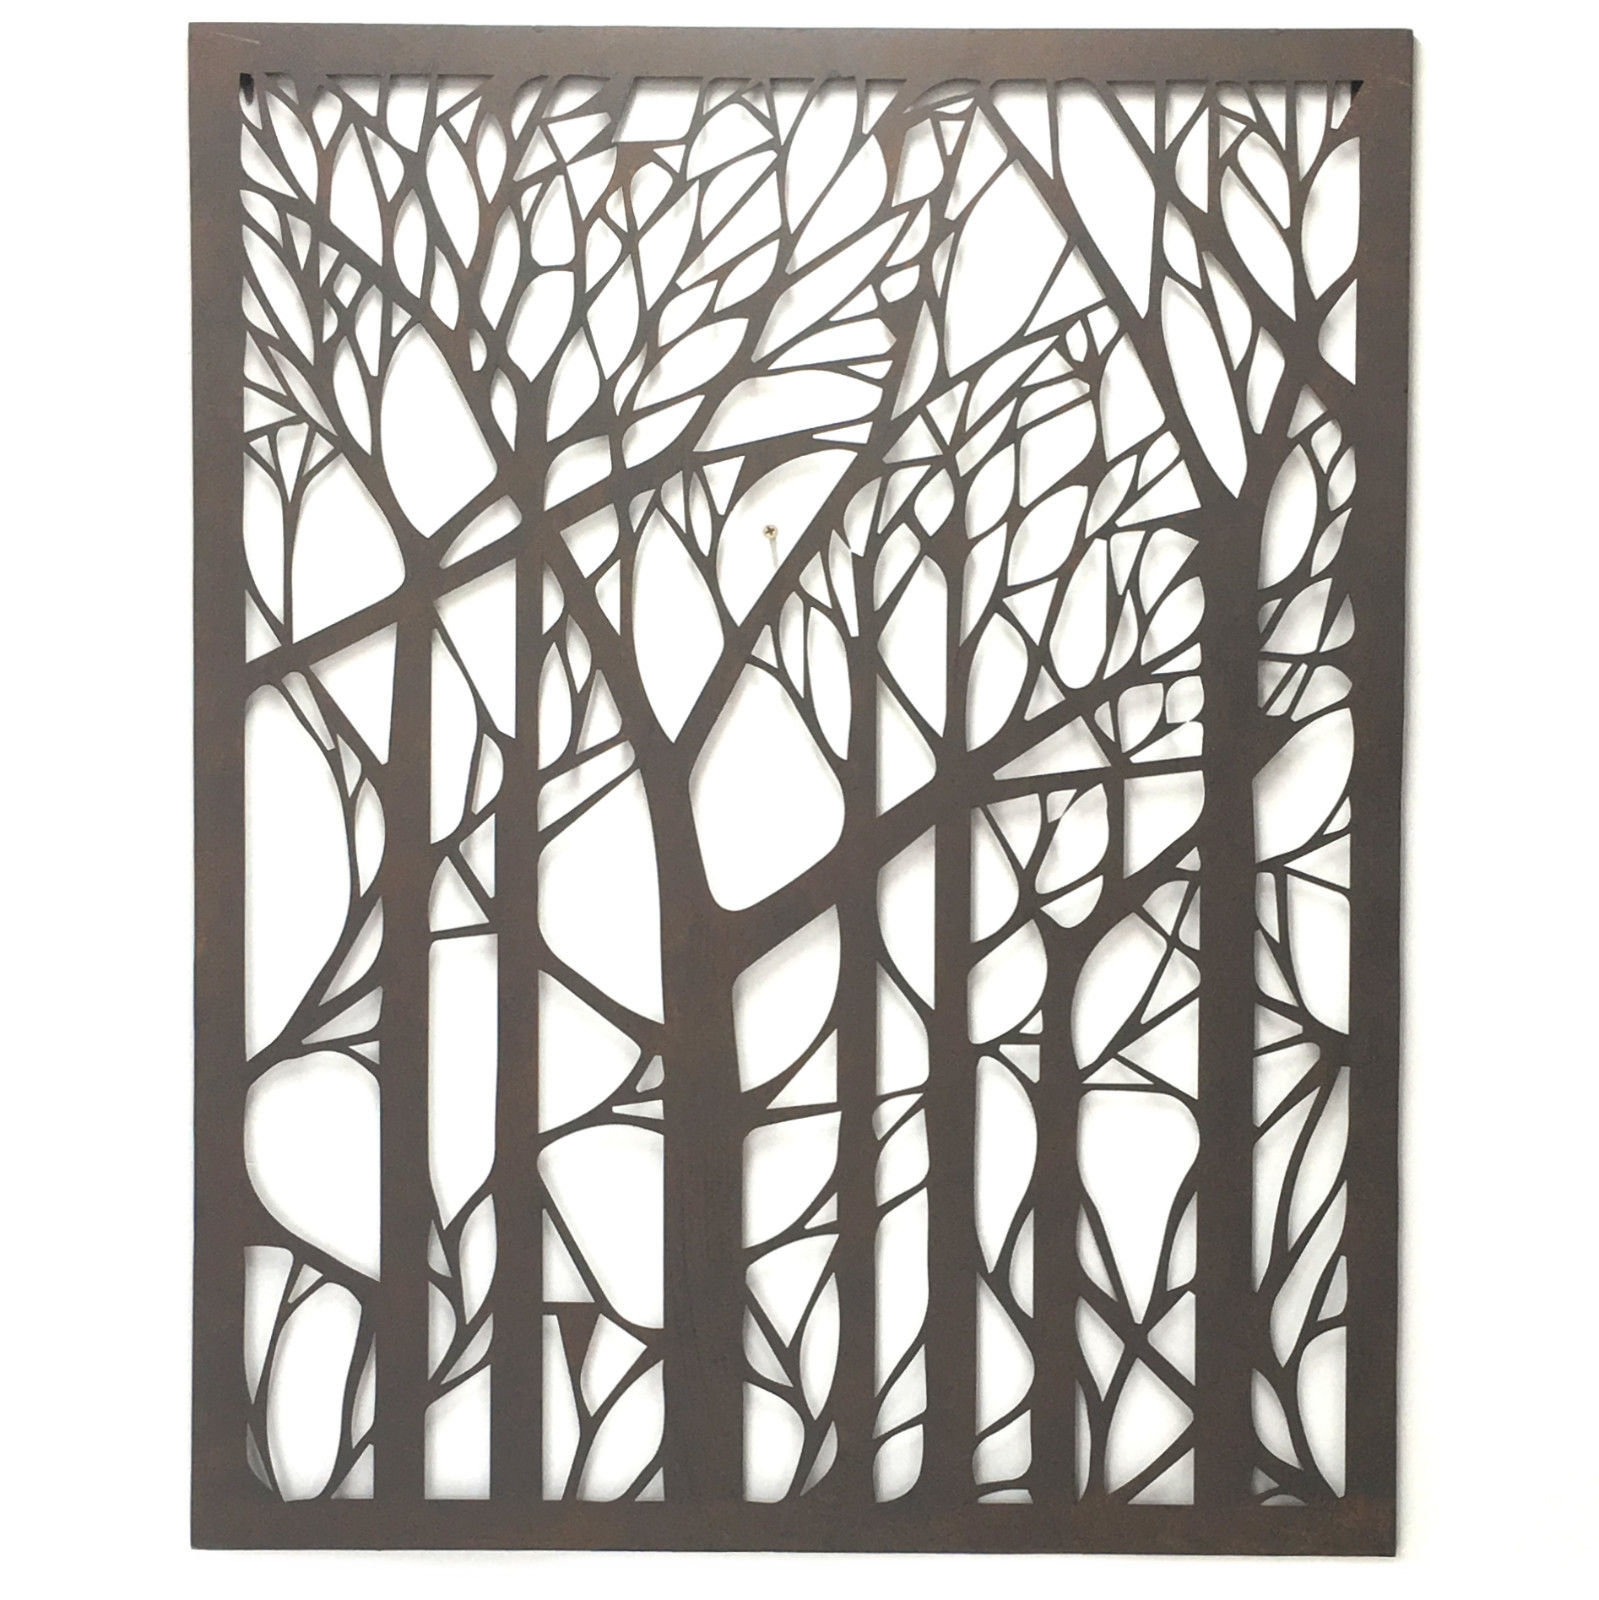 Outdoor Wall Art Metal Tree Hanging Garden Iron Sculpture Laser intended for Outdoor Metal Wall Art (Image 15 of 20)